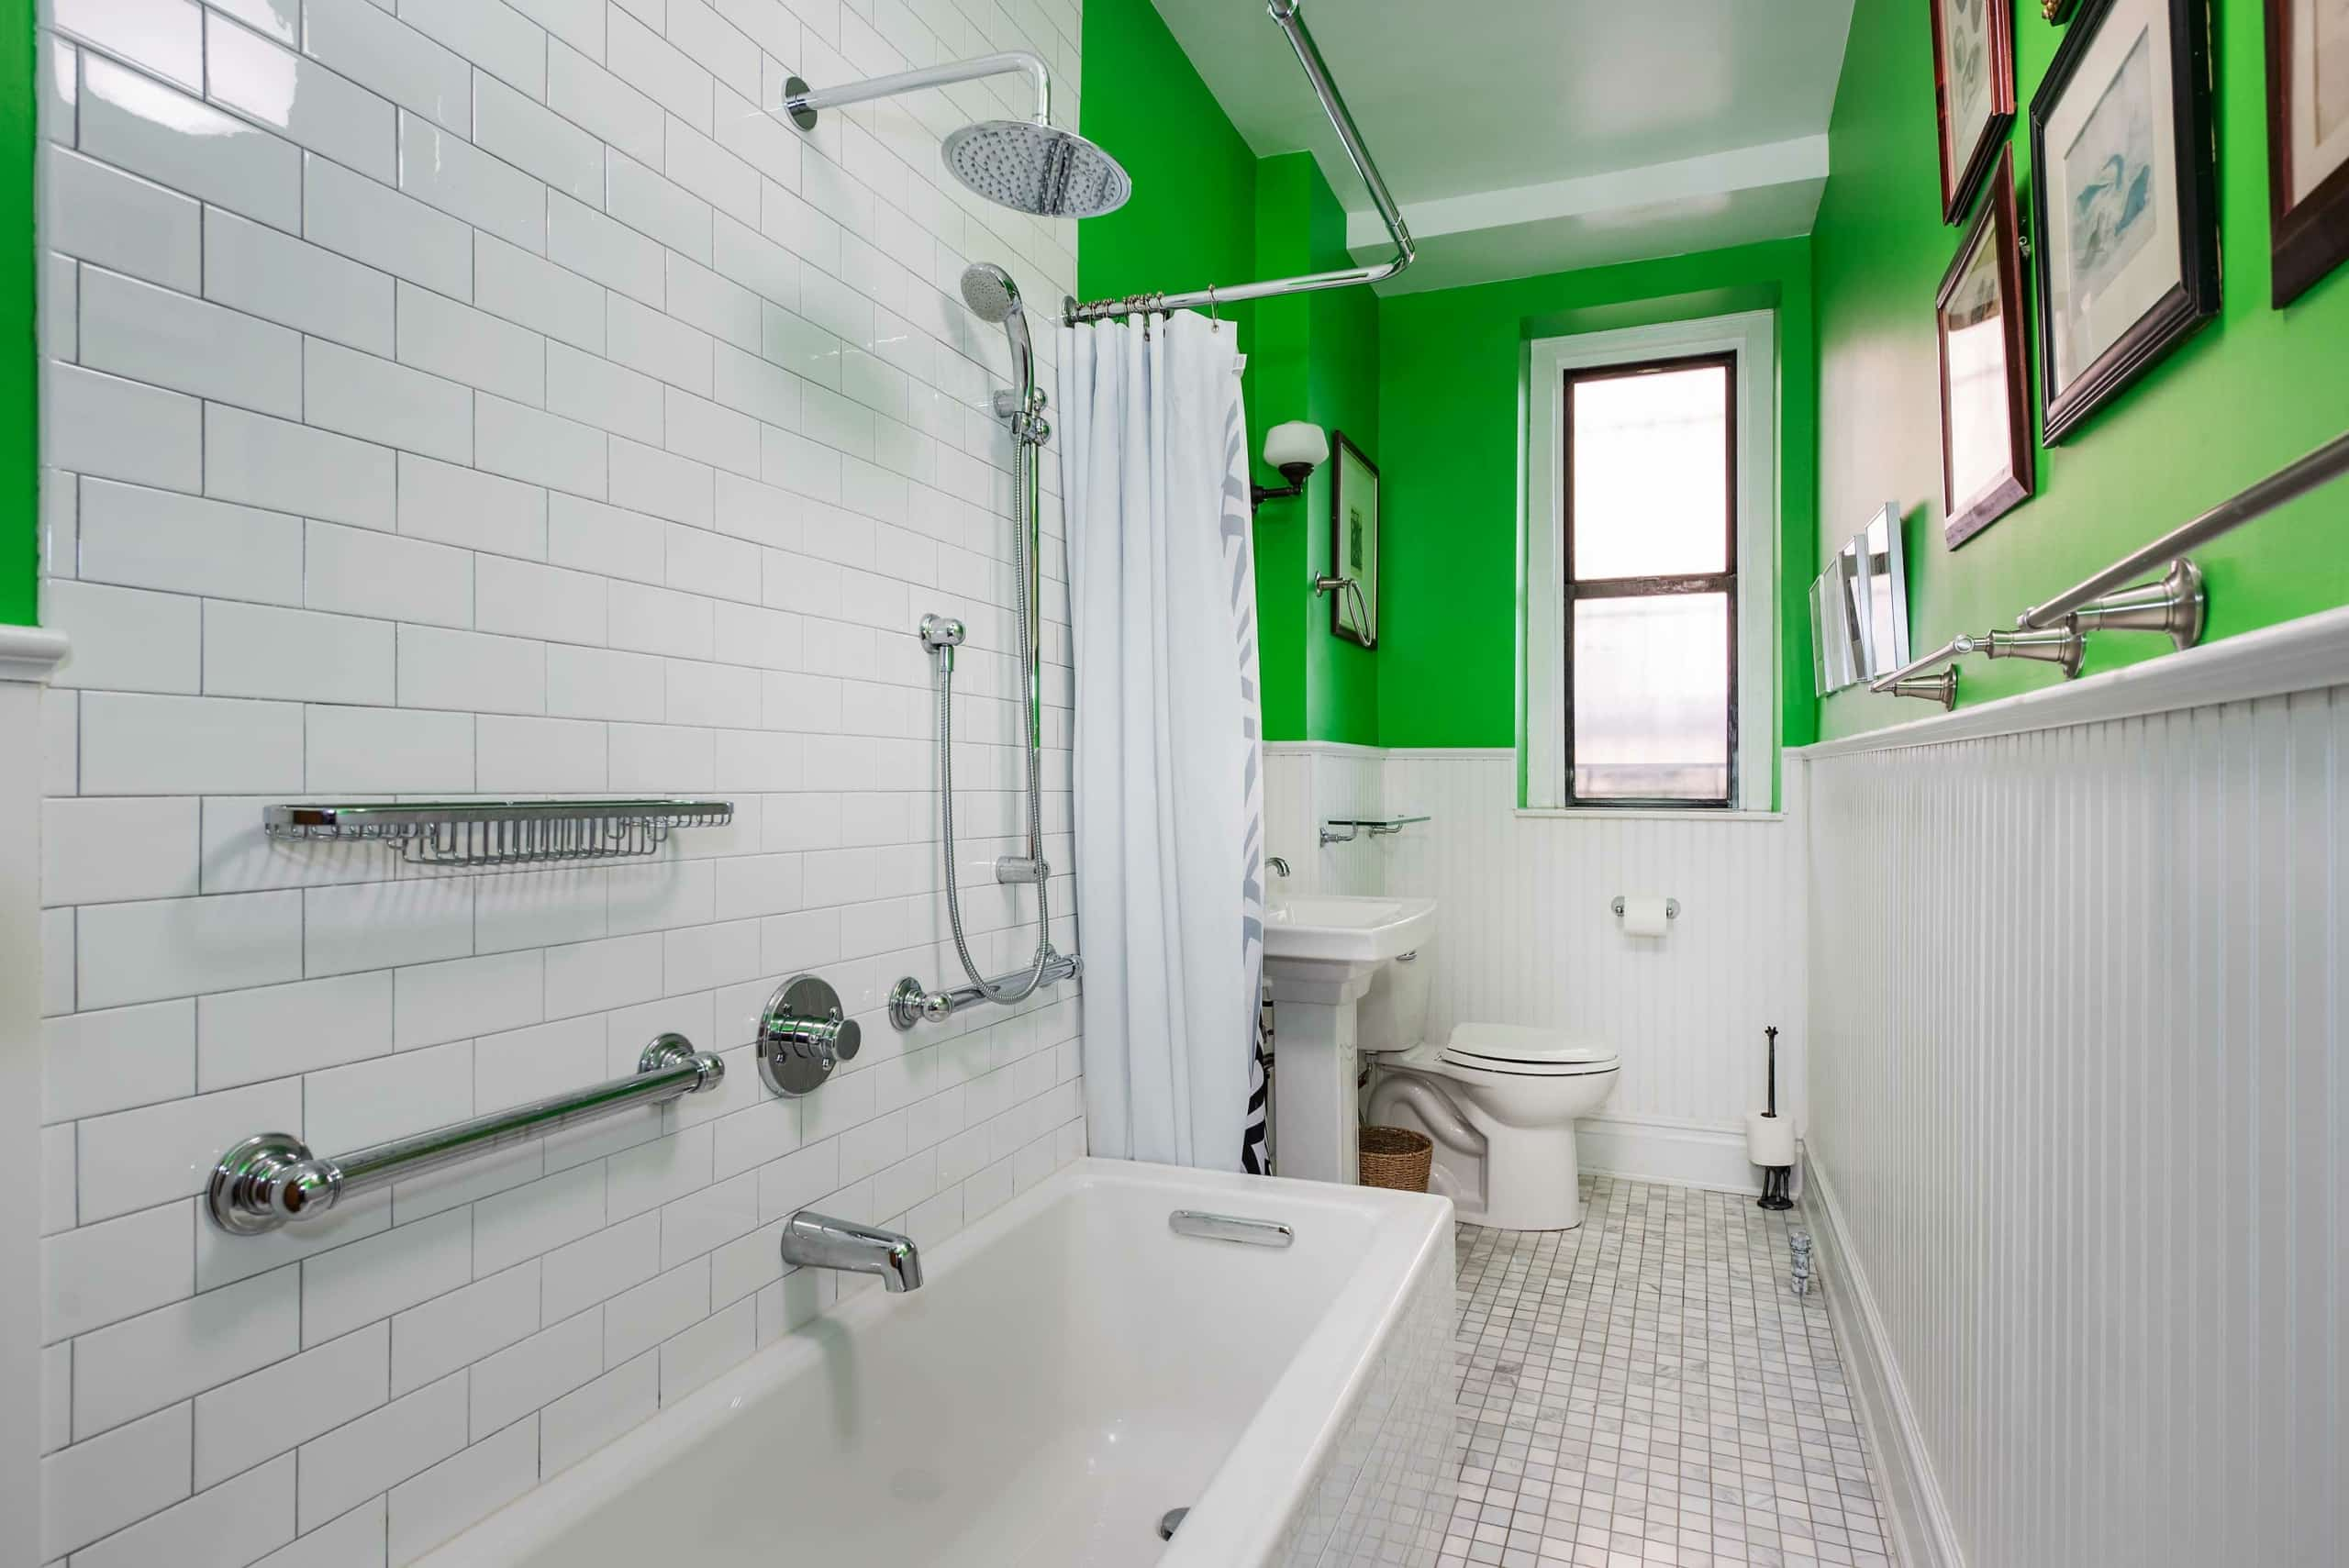 What You Need To Know About Walk-In Tubs